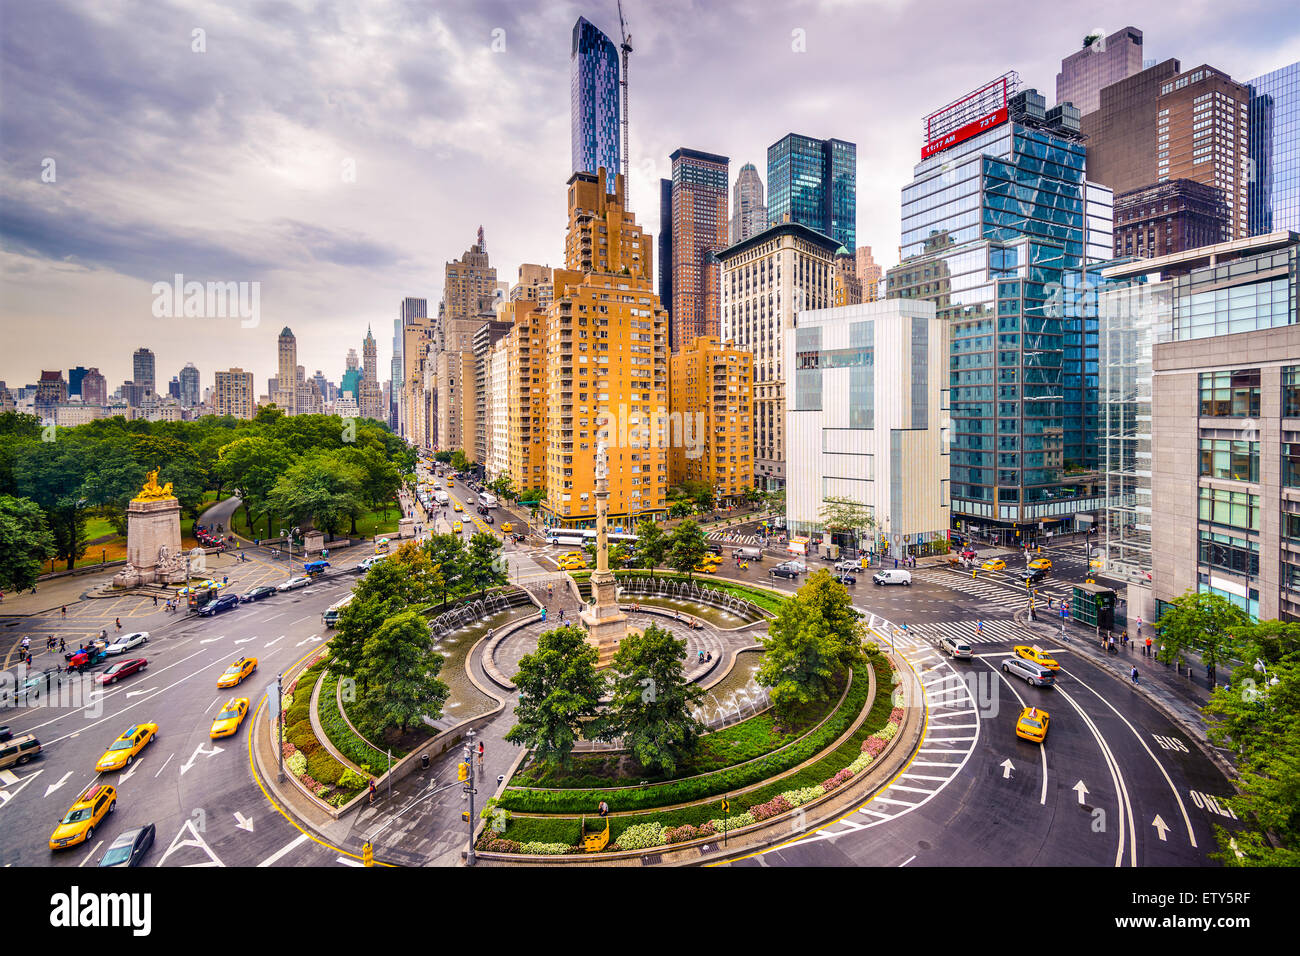 New York City, USA cityscape at Columbus Circle. - Stock Image